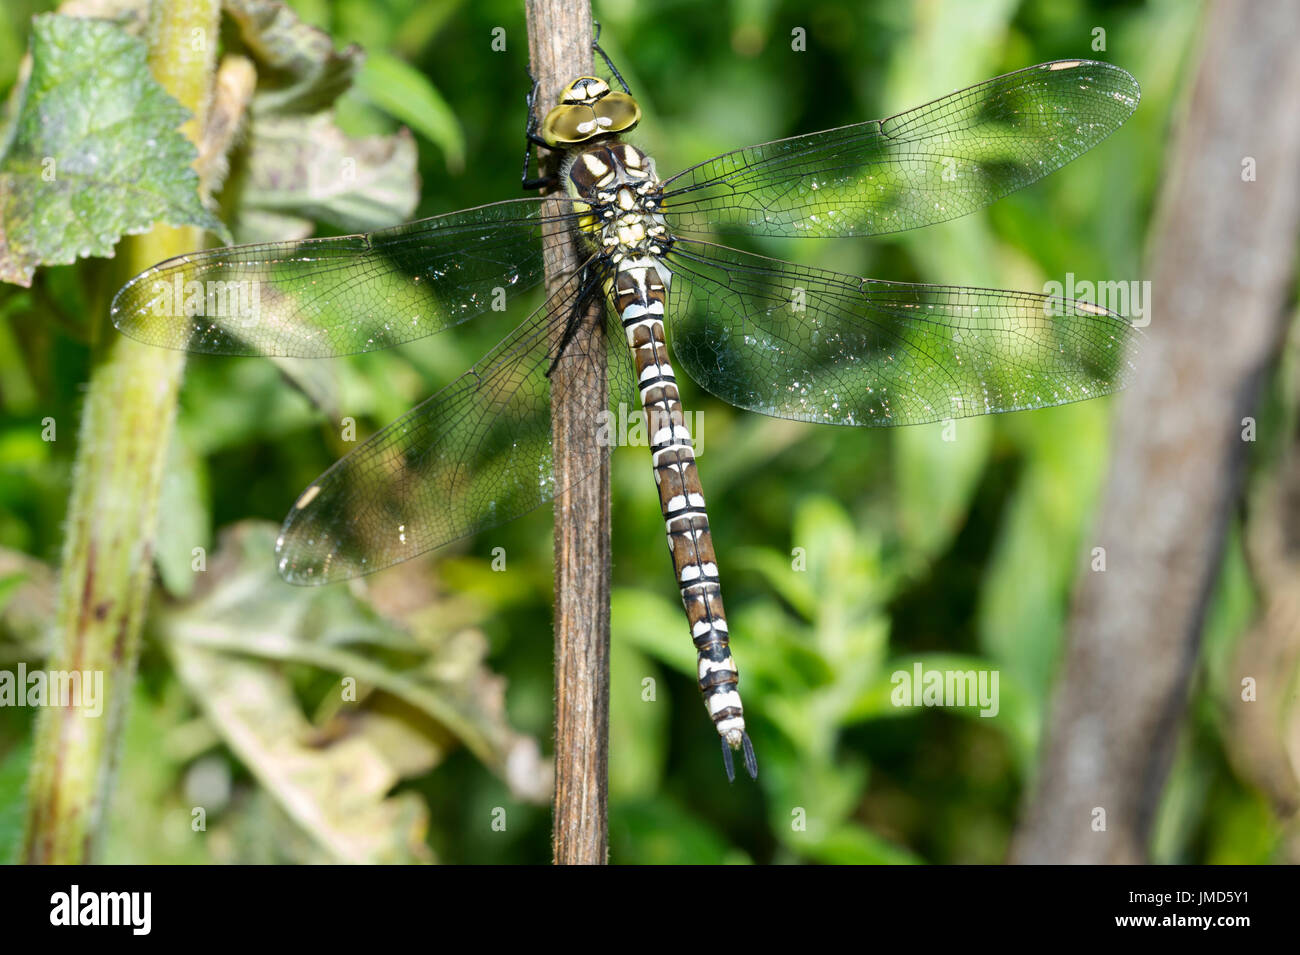 A Southern Hawker (Aeshna cyanea) Dragonfly drying out after a summer storm in the East Yorkshire Countryside - Stock Image